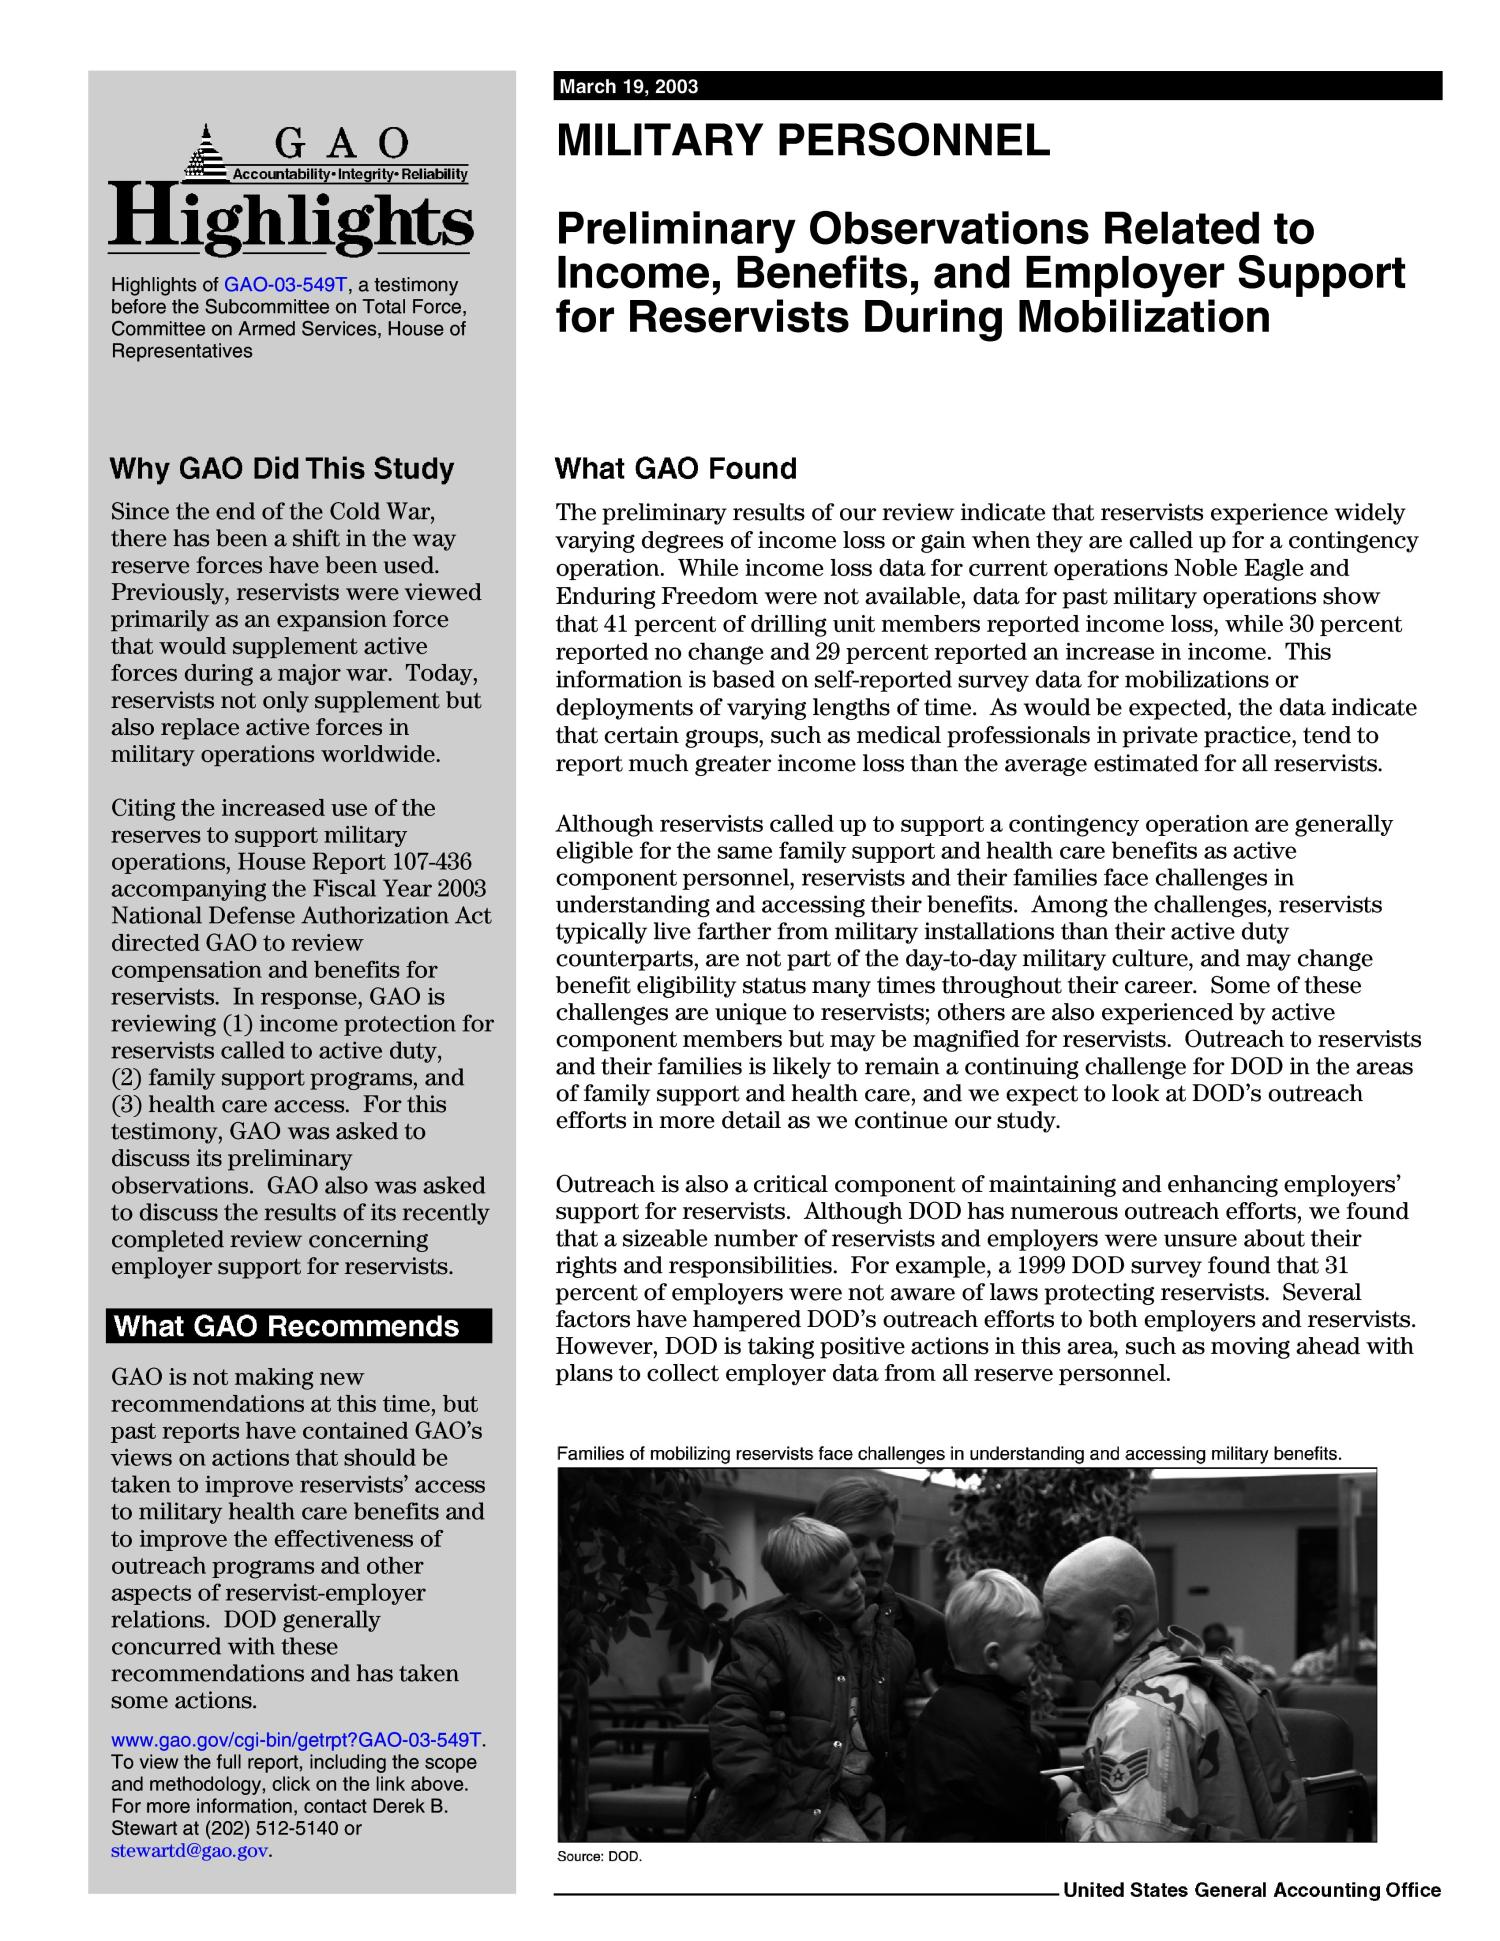 Military Personnel: Preliminary Observations Related to Income, Benefits, and Employer Support for Reservists During Mobilizations                                                                                                      [Sequence #]: 2 of 22